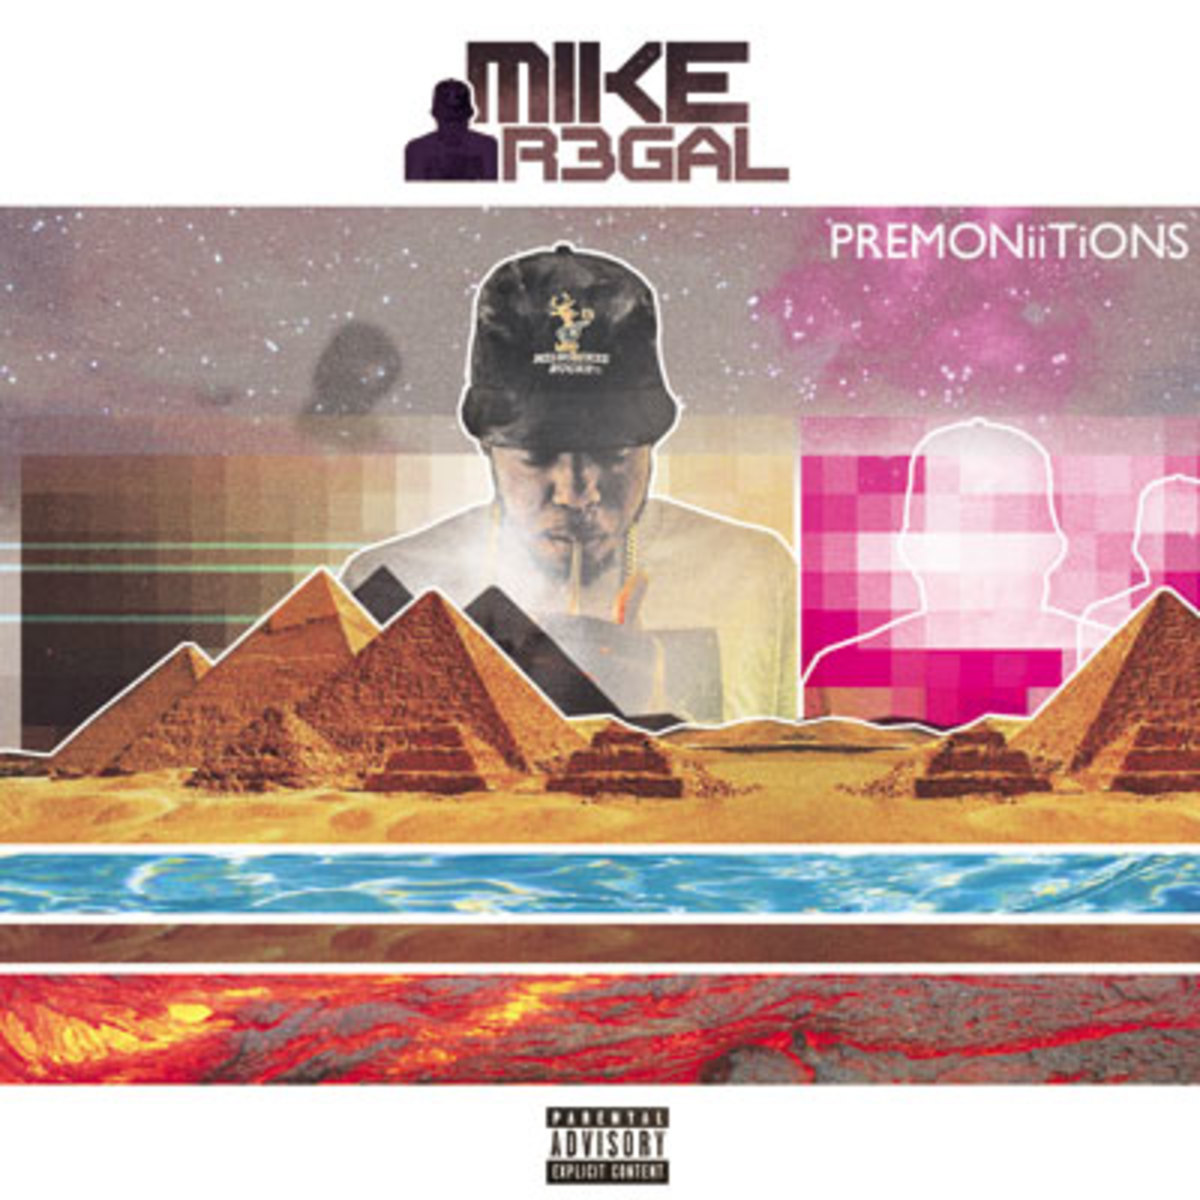 mike-regal-premoniitions.jpg